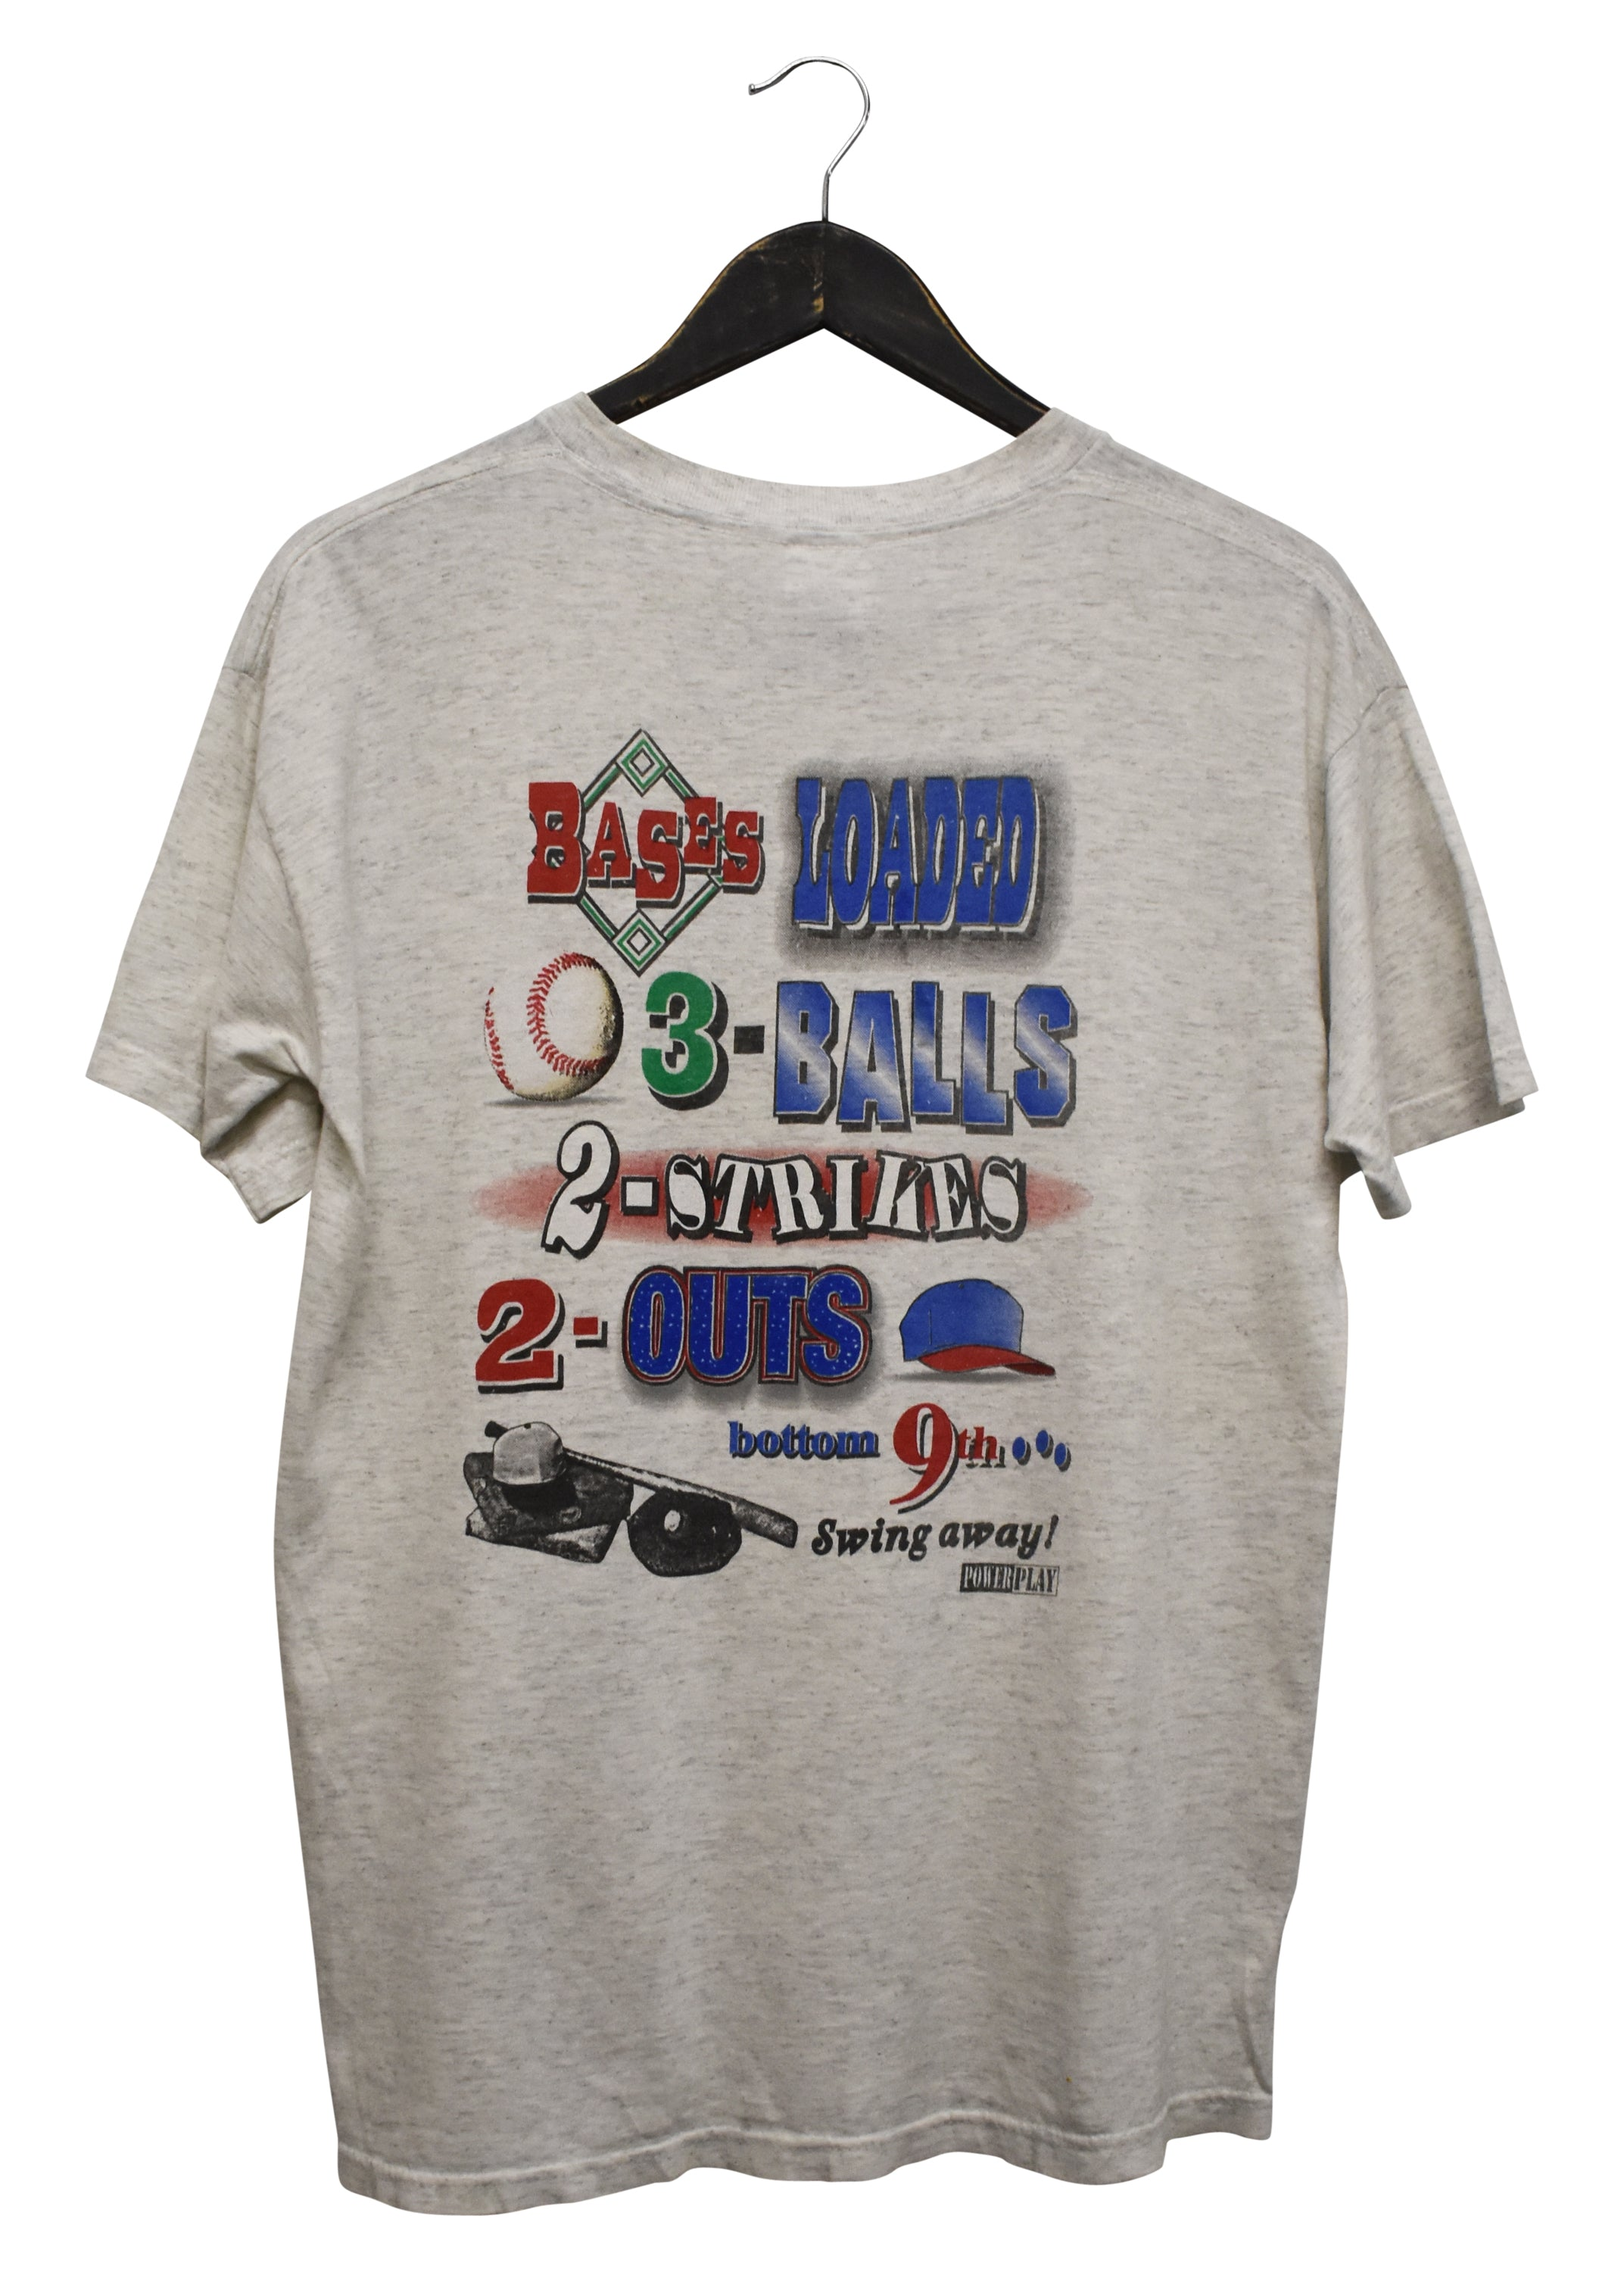 D.A.R.E 'TO KEEPS KIDS FROM GUNS' VINTAGE TEE